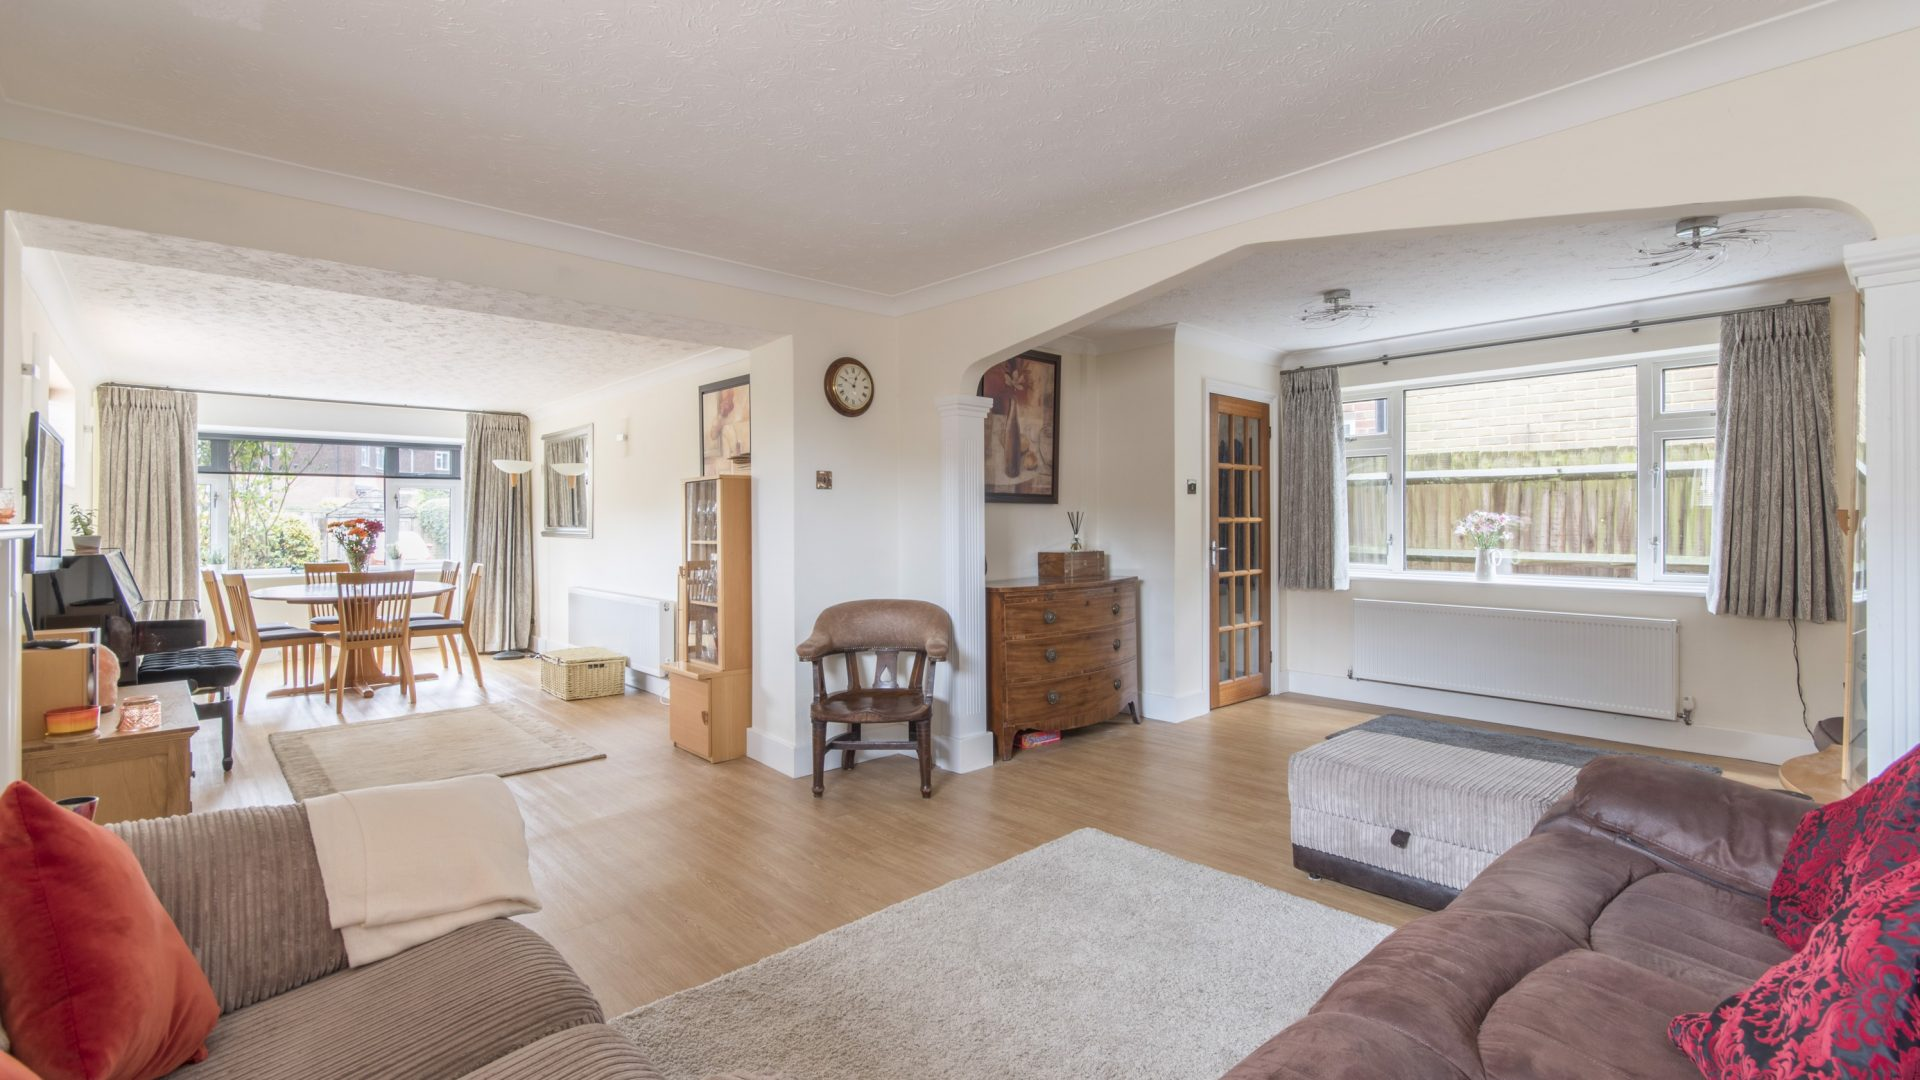 Main Road, Sevenoaks for sale with Mr and Mrs Clarke estate agent